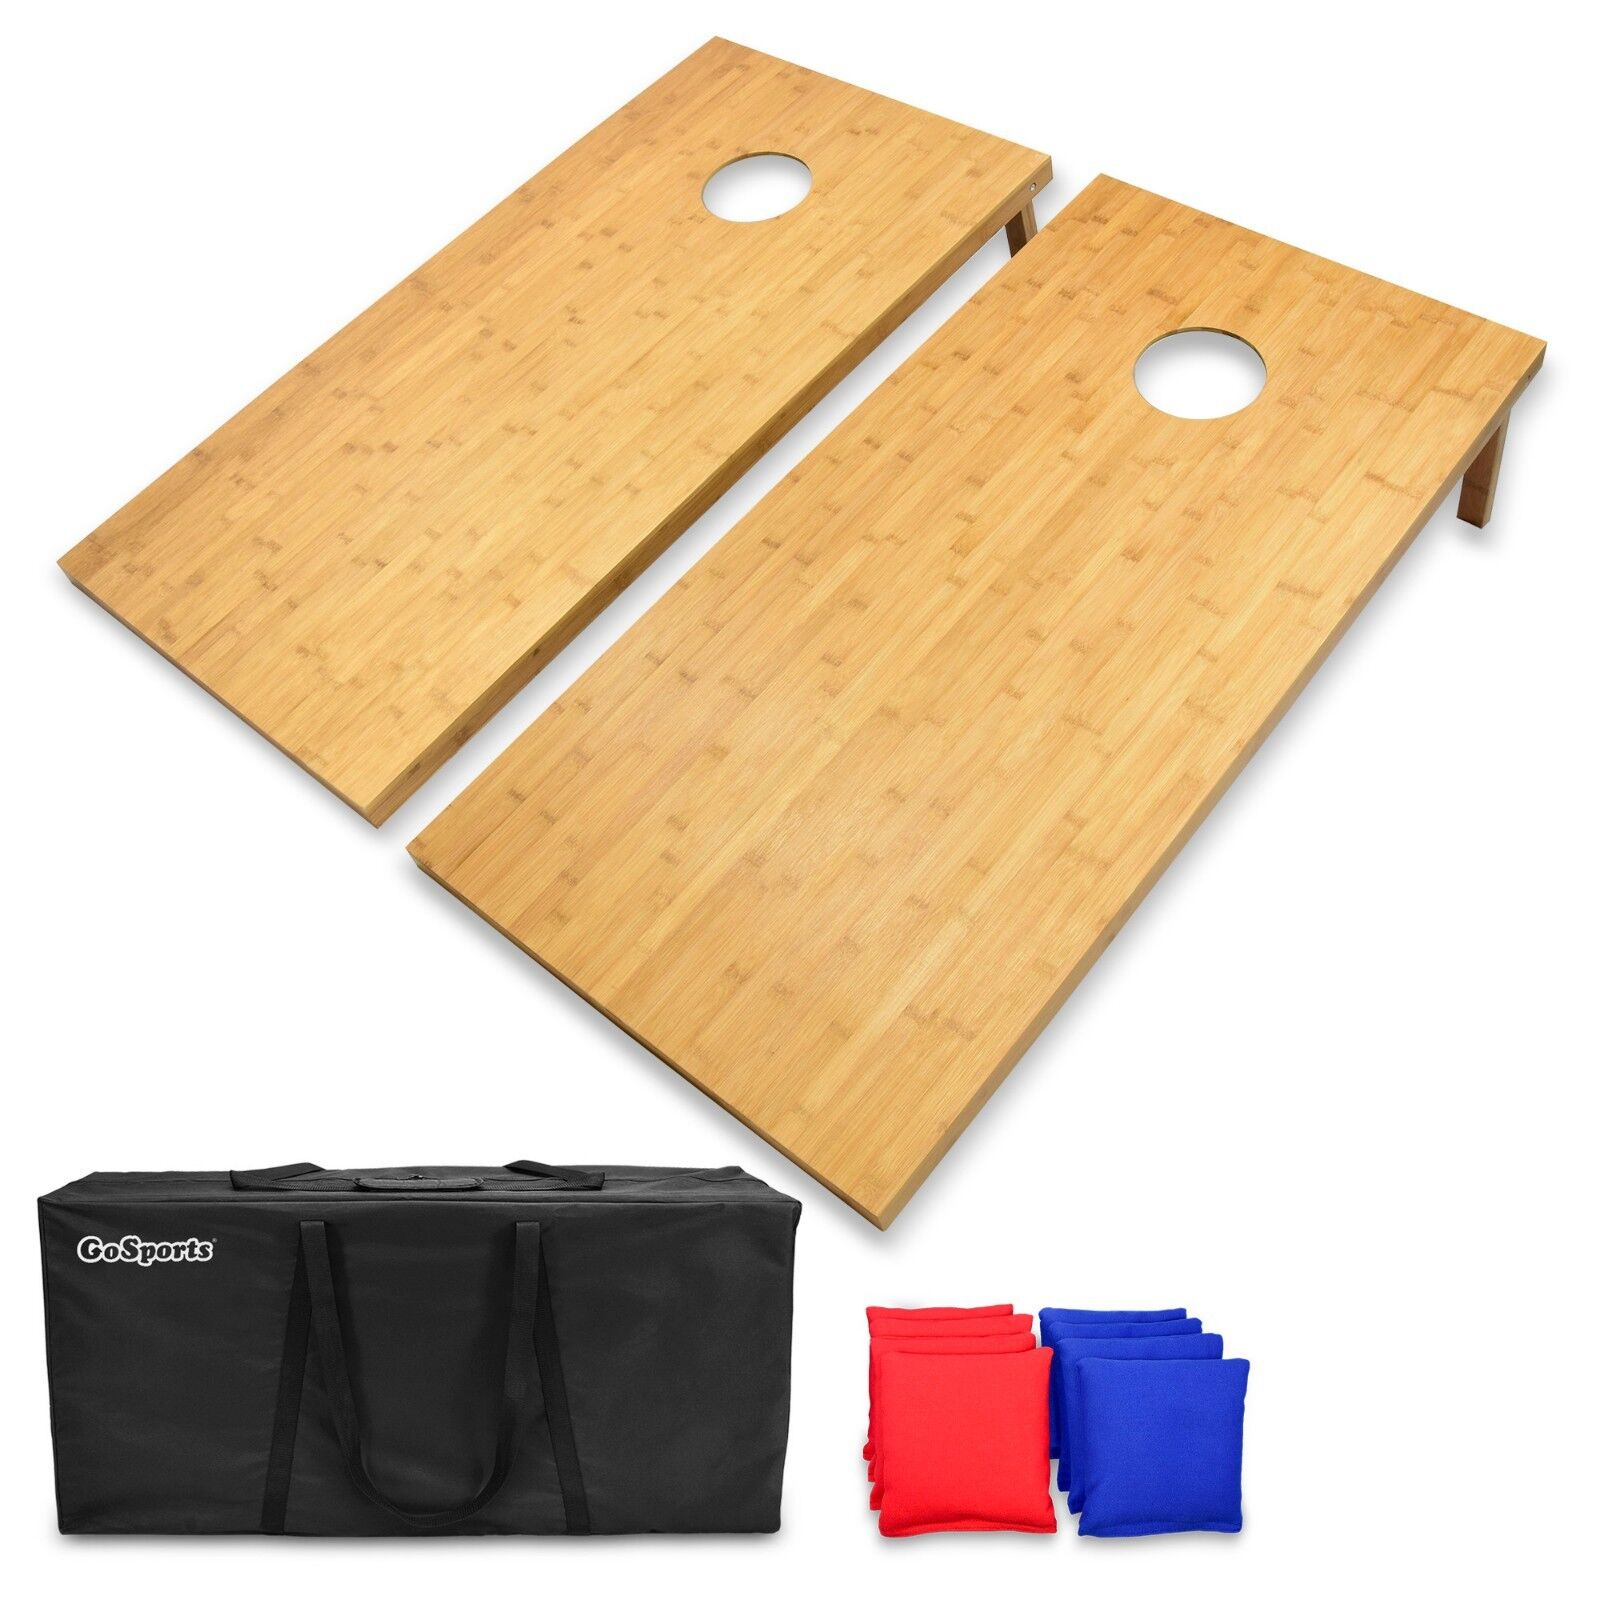 GoSports Regulation Size Bamboo Cornhole Toss Set   8 Bean Bags & Carry Case